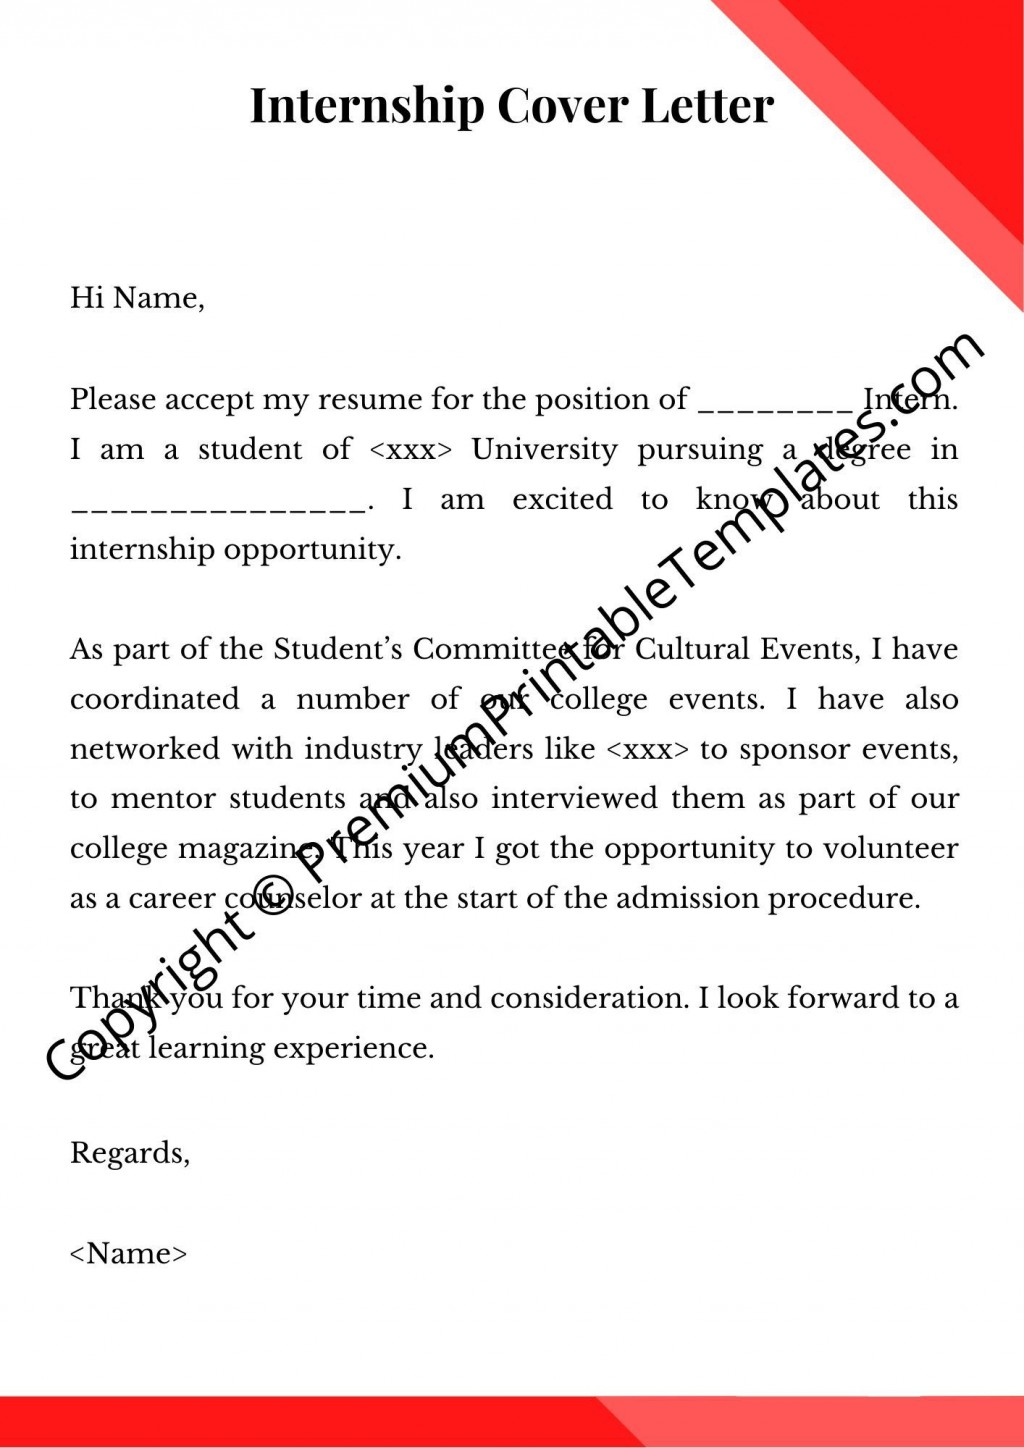 001 Impressive Cover Letter For Internship Template Inspiration  Free Engineering Example SummerLarge